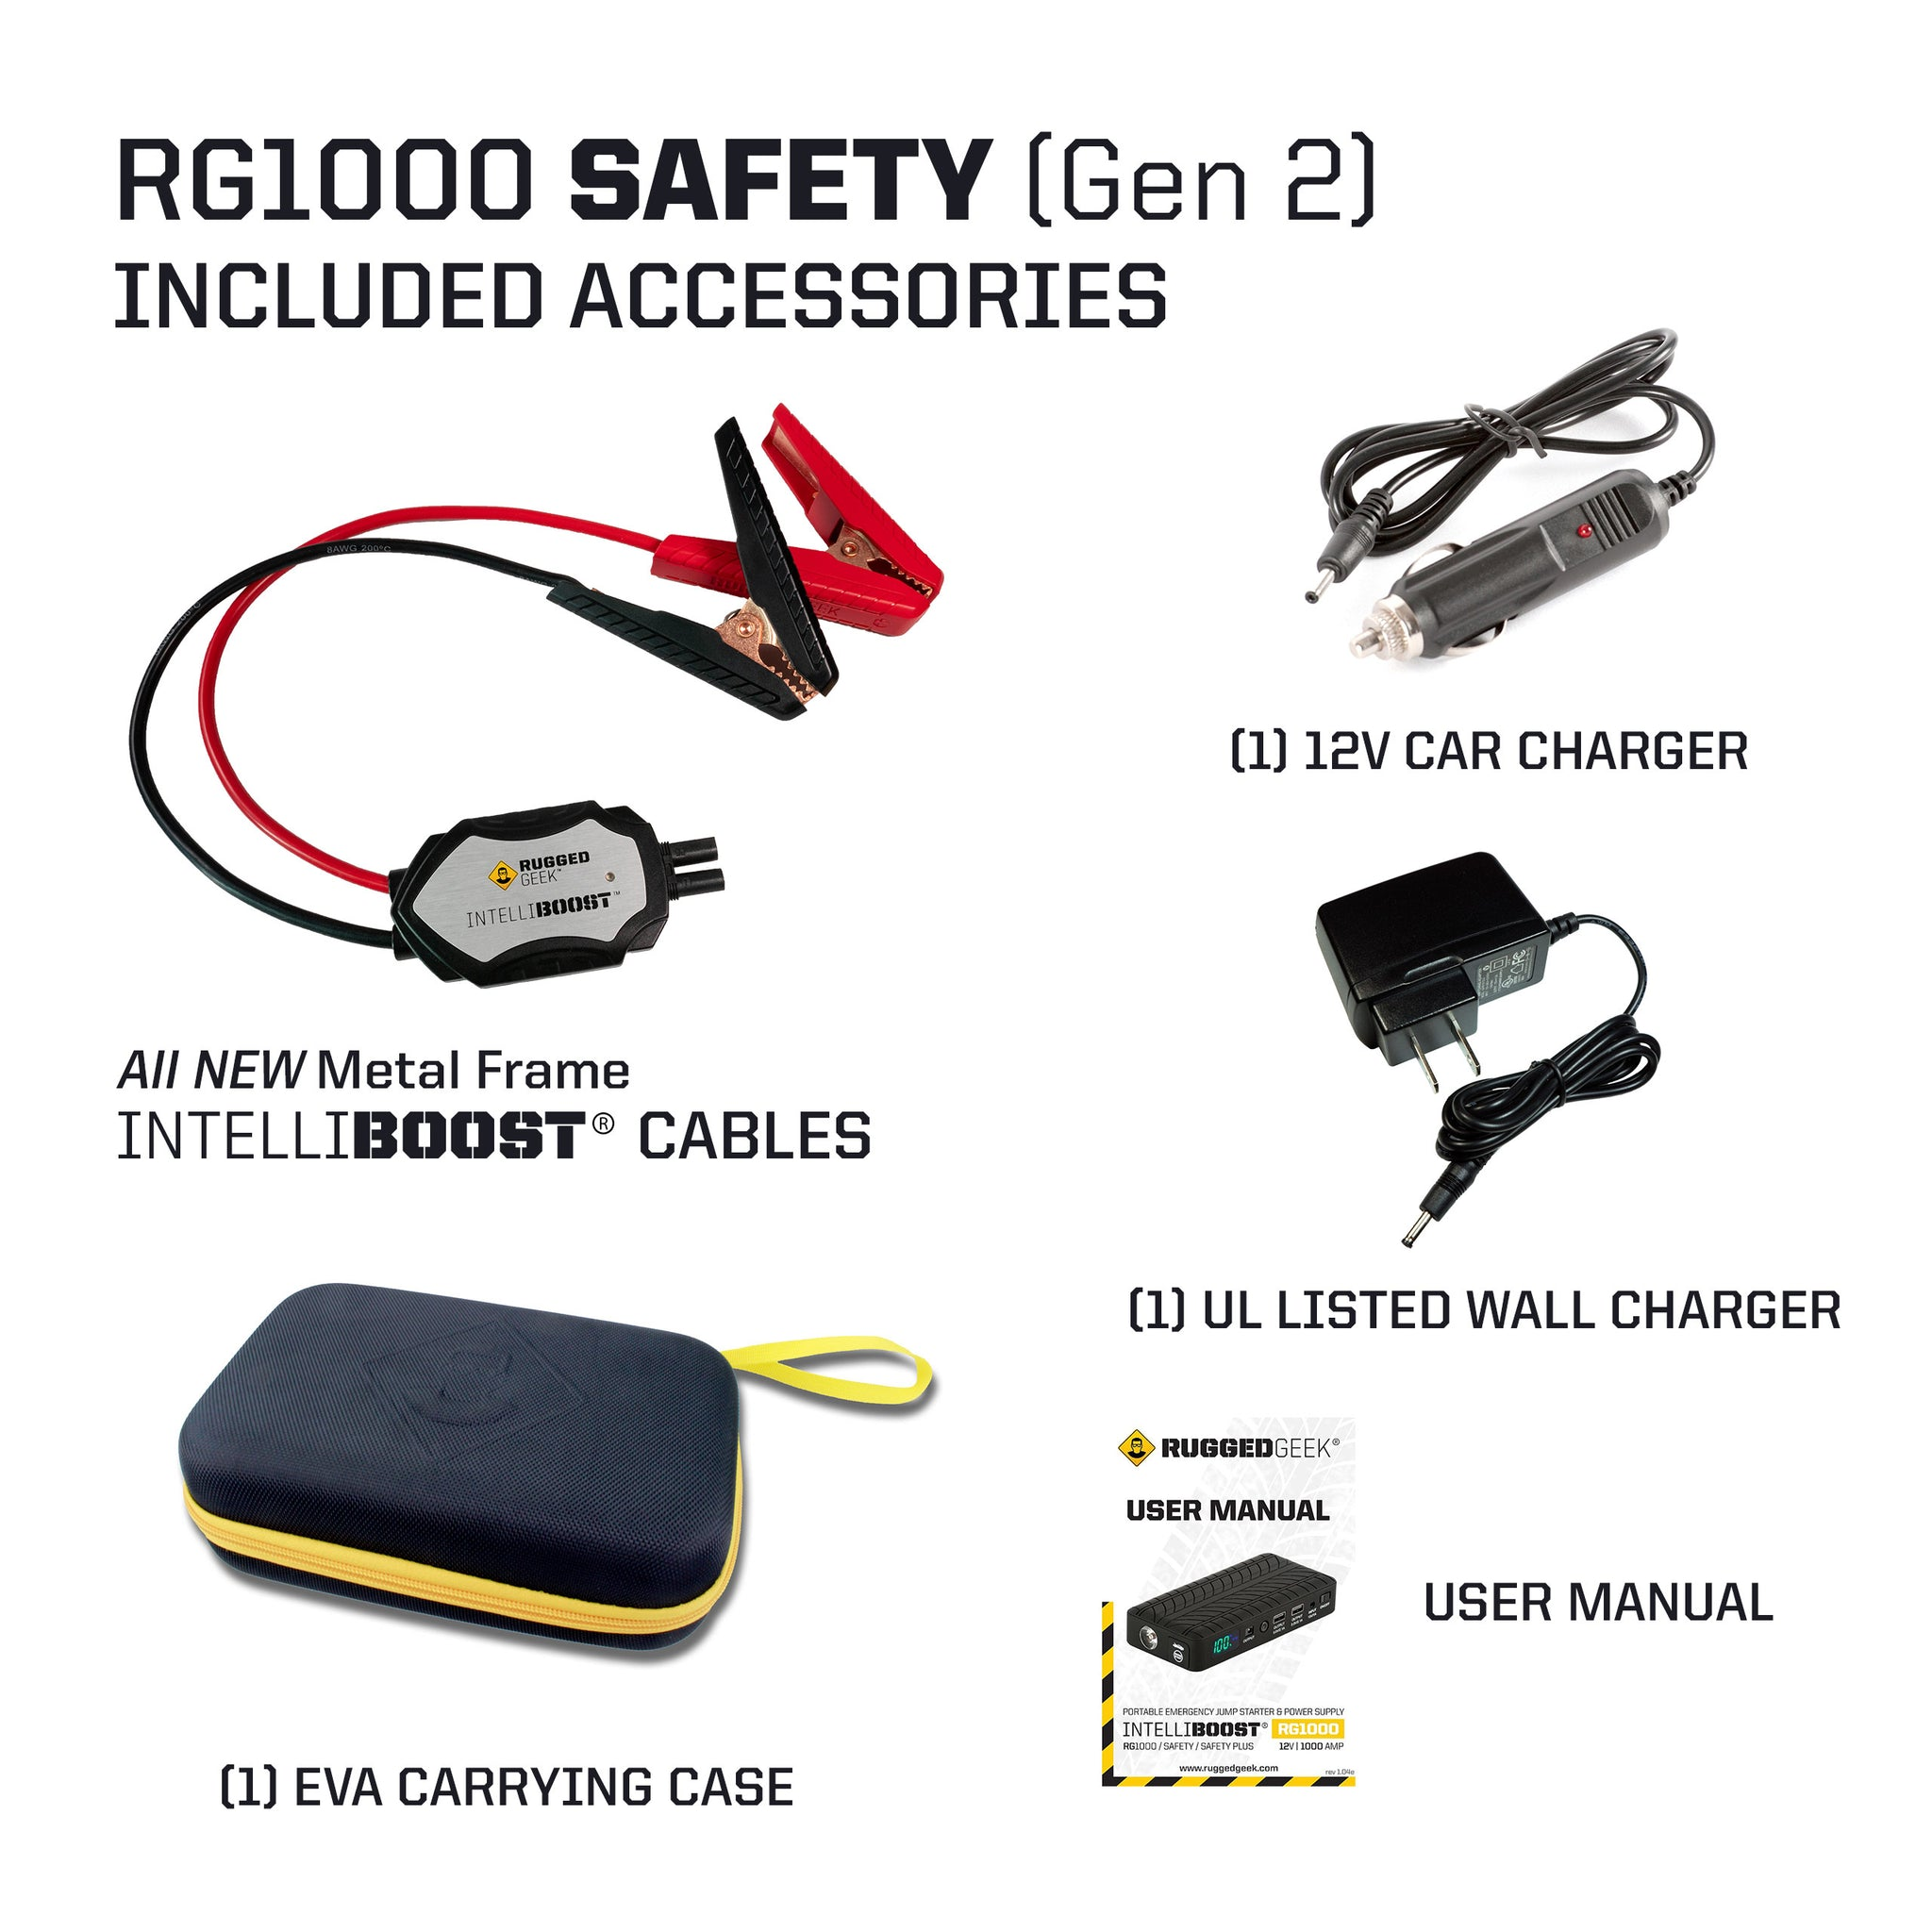 Rugged Geek RG1000 Safety Gen2